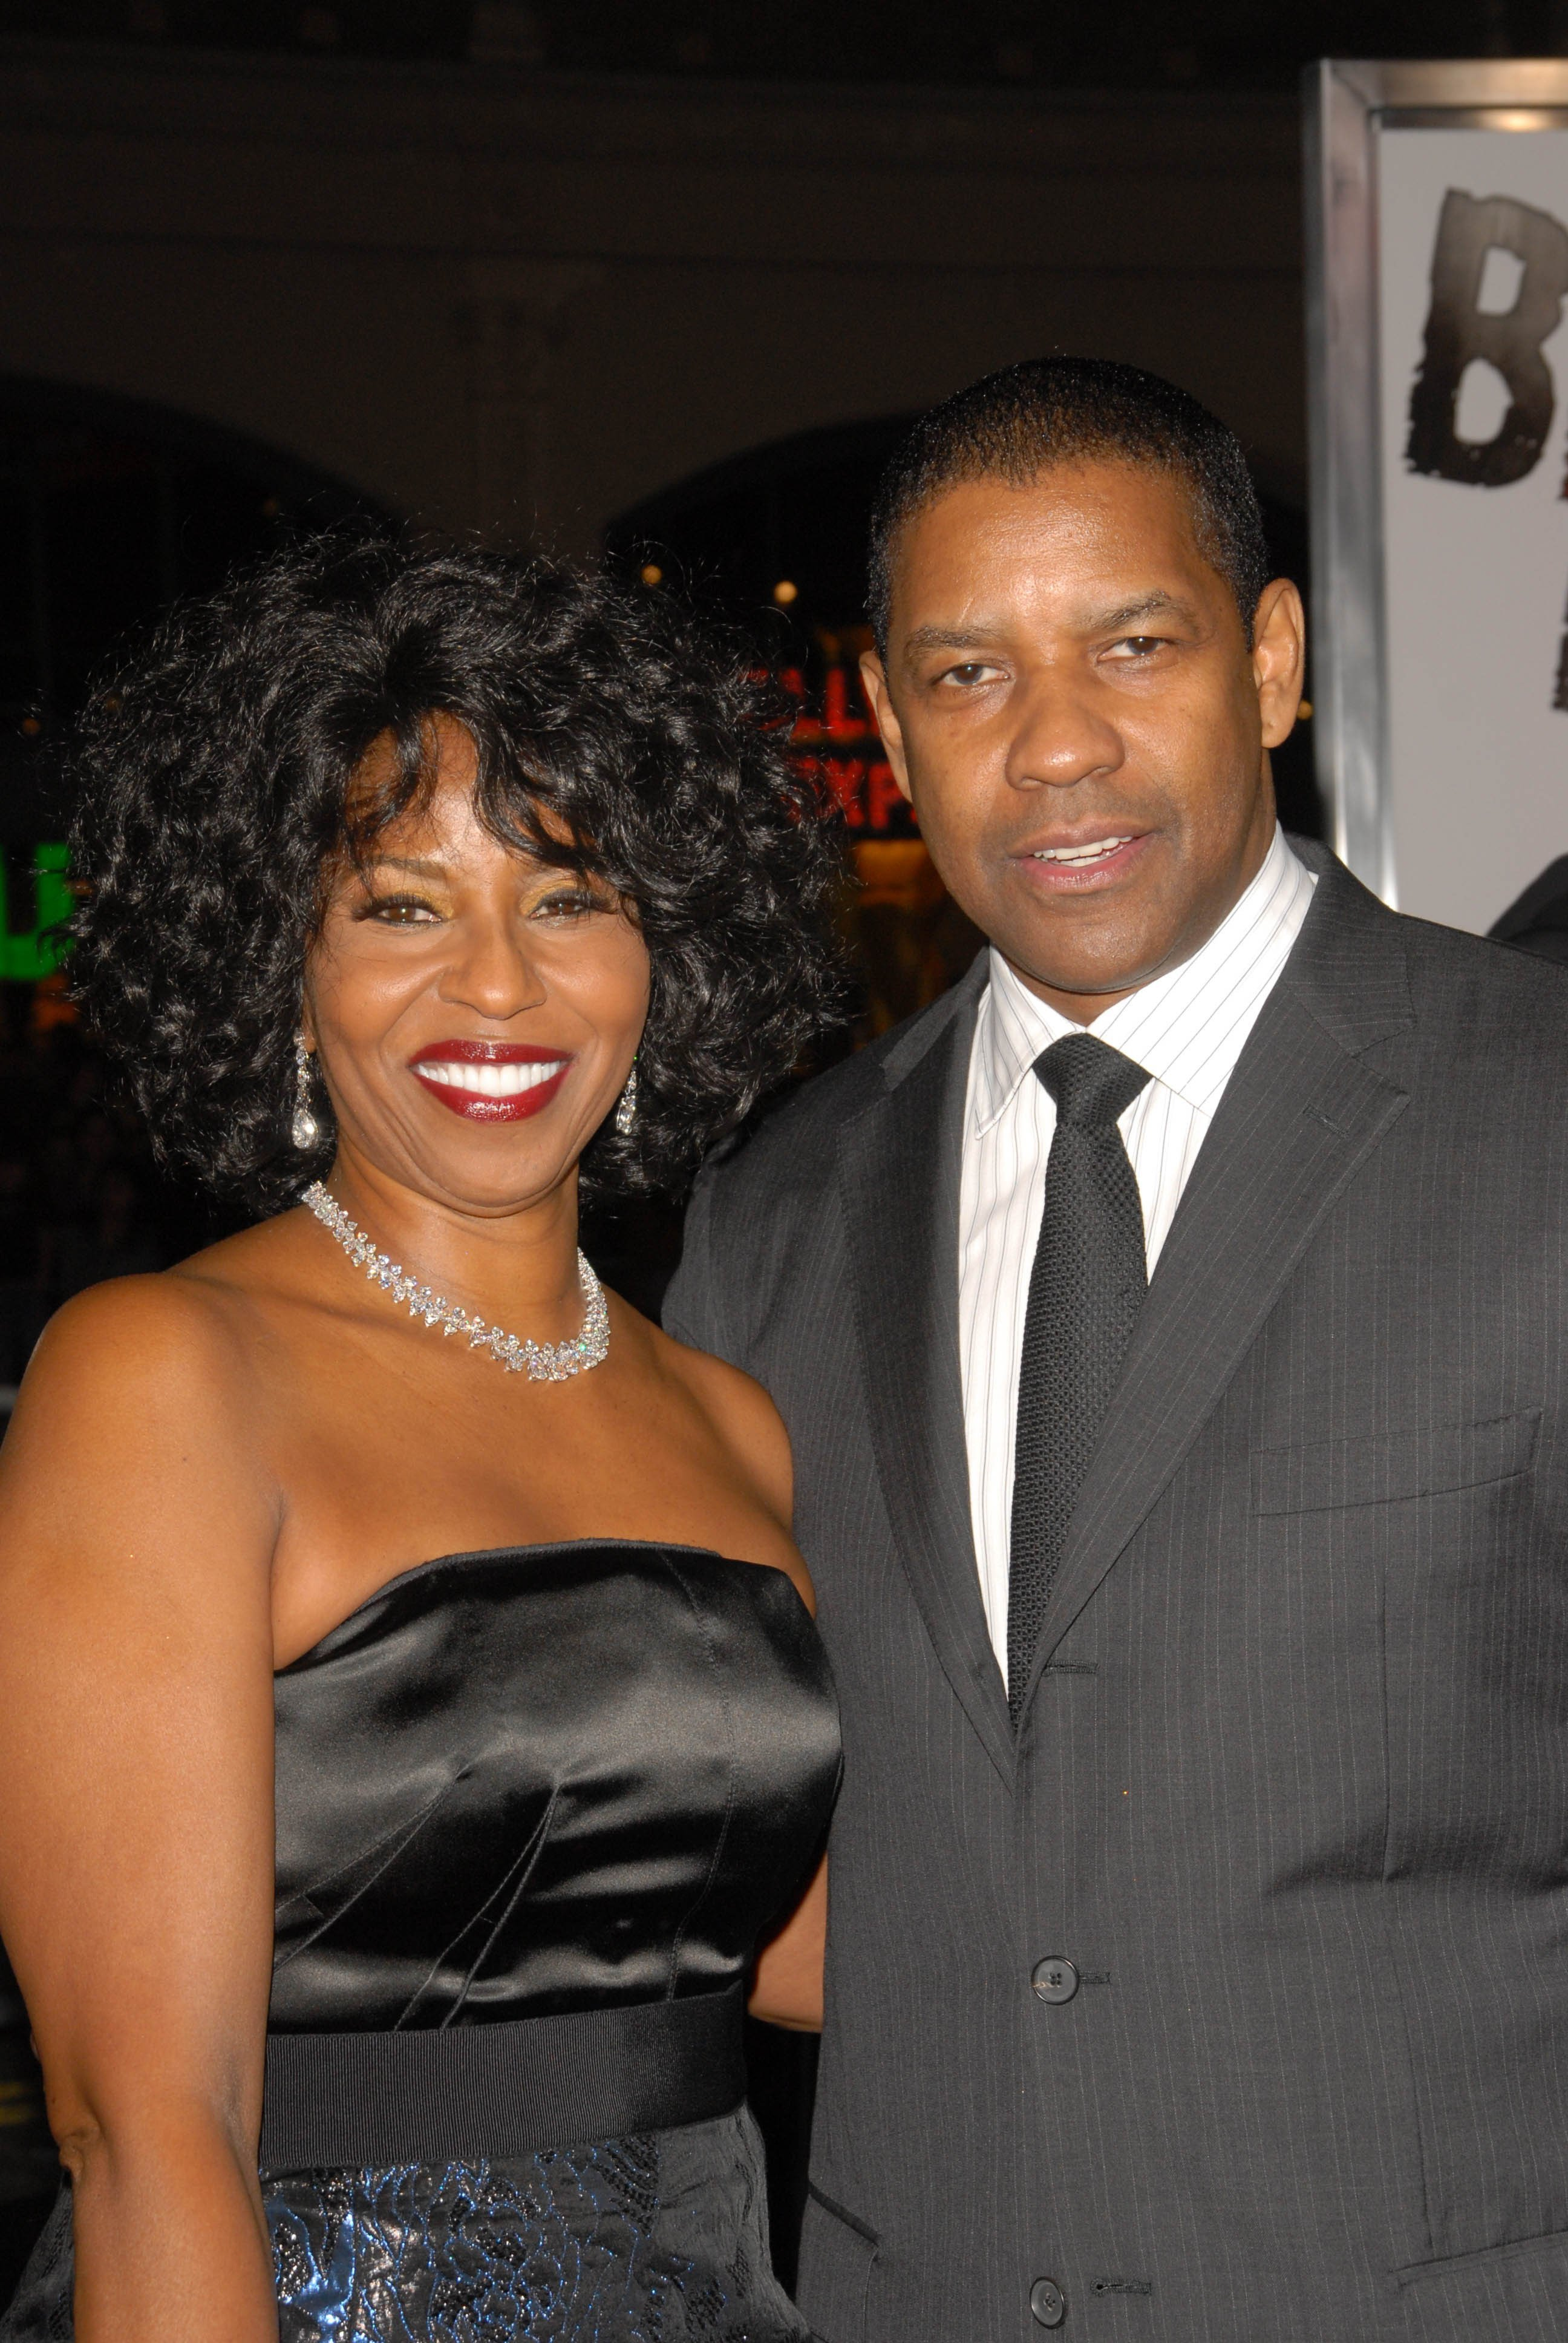 """Denzel Washington and wife Pauletta at """"The Book Of Eli"""" premiere in Hollywood on January 11, 2010 l Source: Shutterstock"""